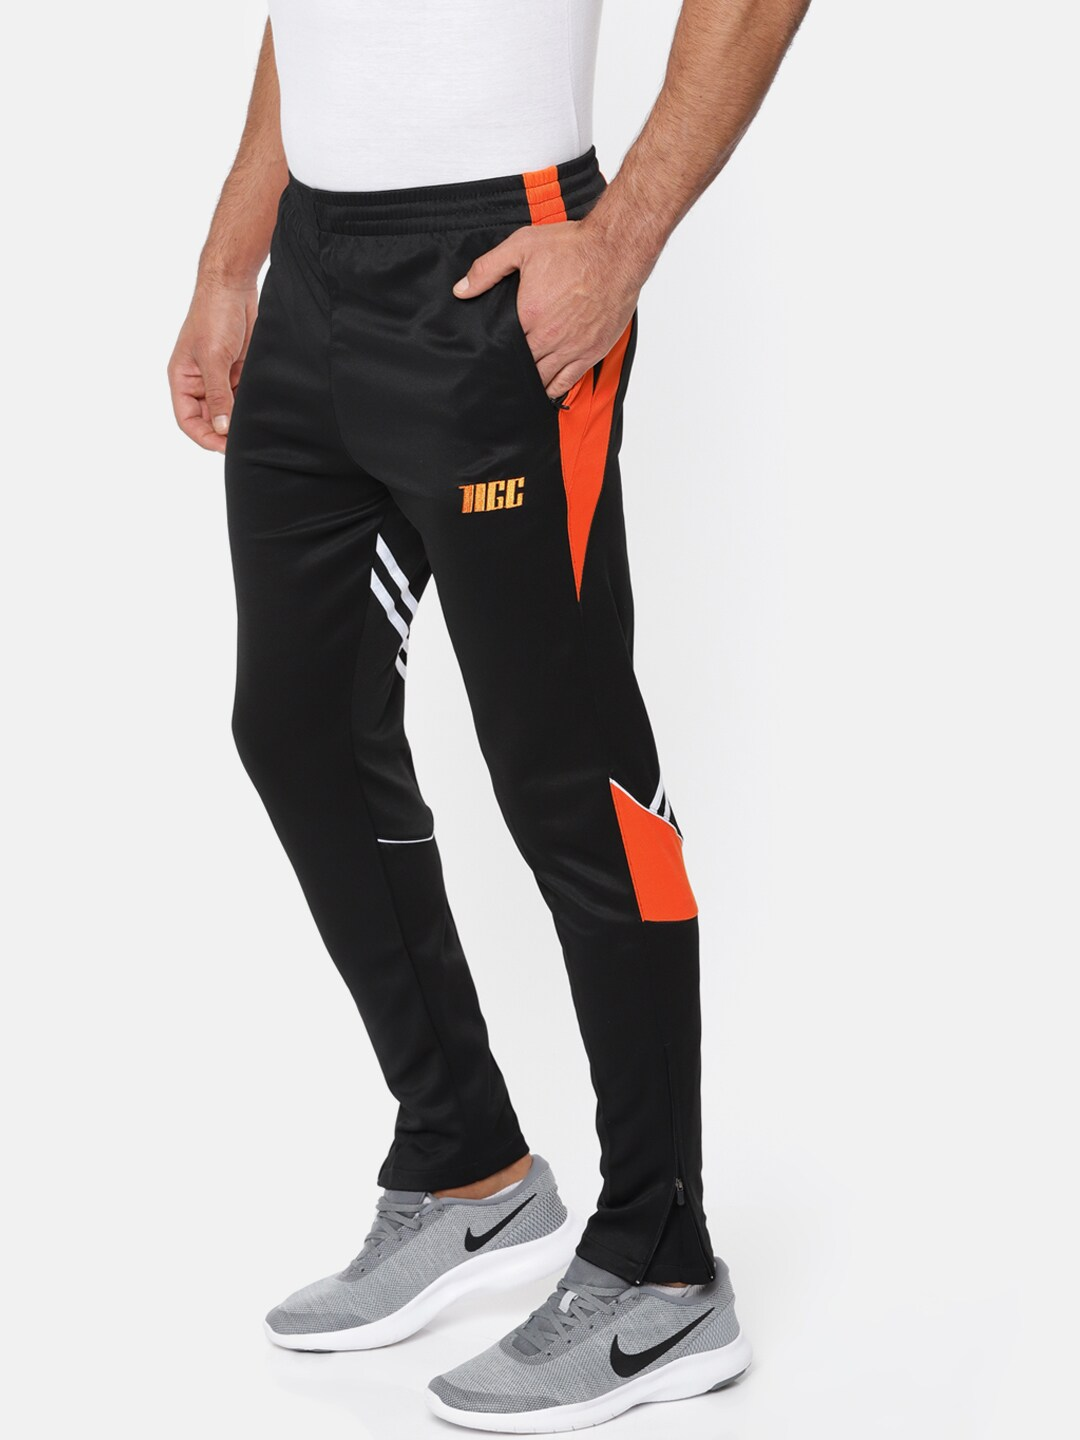 8ab1a5c881f4 The Indian Garage Co Online Store – Shop for The Indian Garage Co Products  Online in India – Myntra